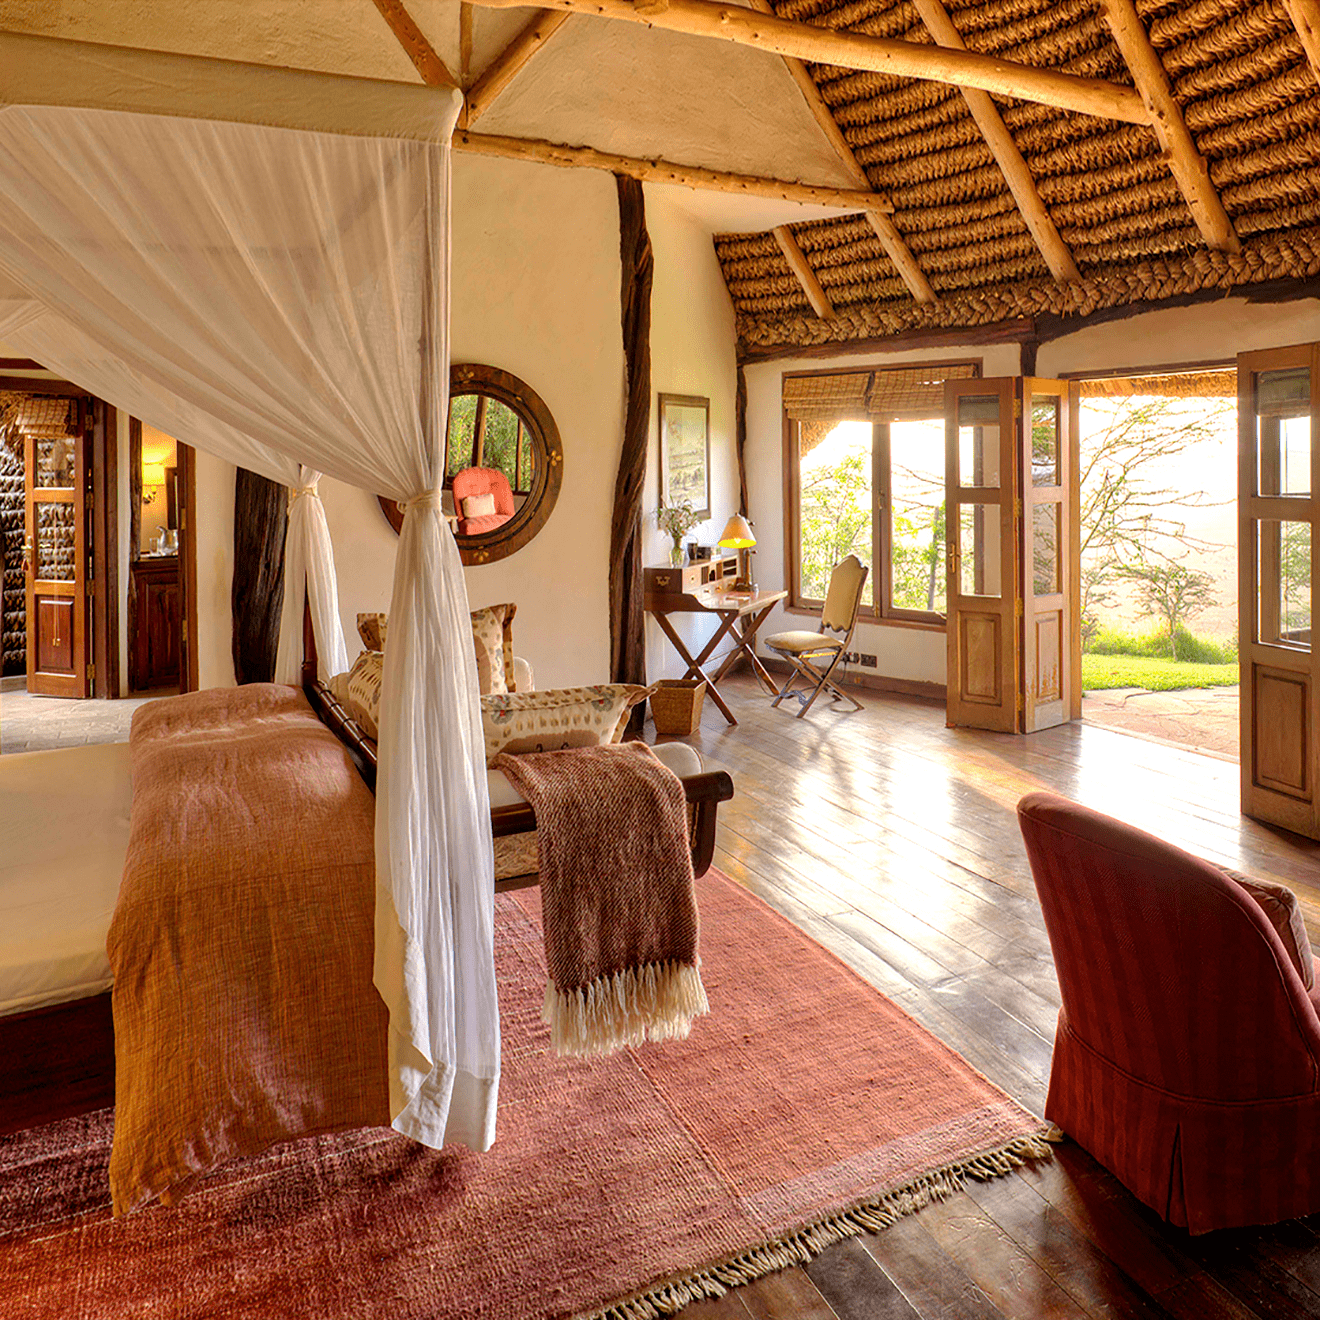 a bedroom looking out on the African bush